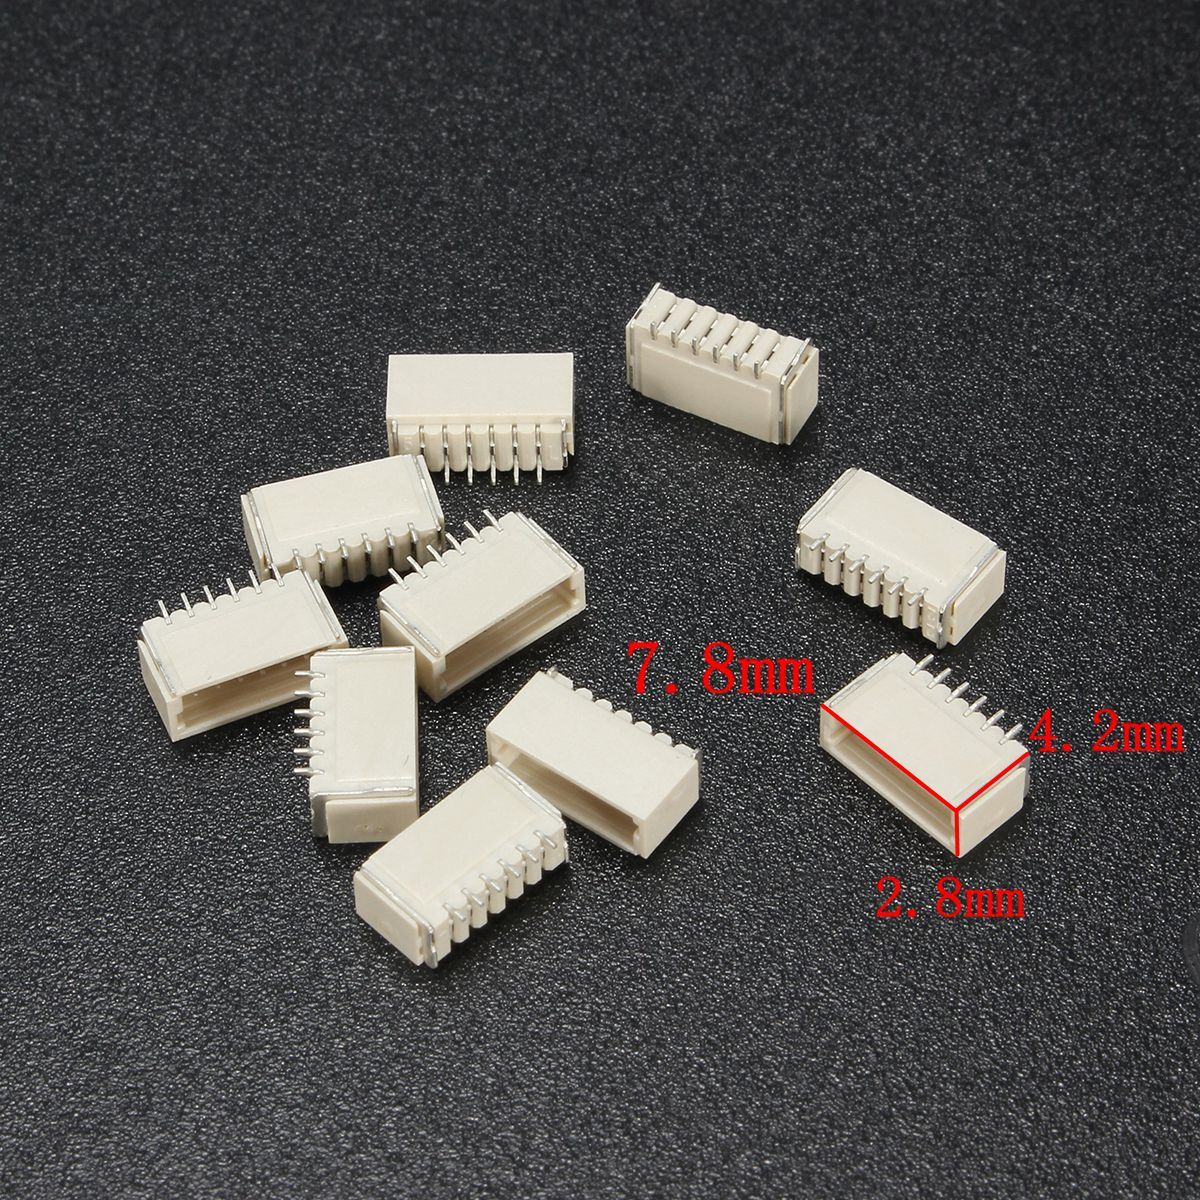 Excellway® 20Pcs Mini Micro JST 1.0mm SH 6-Pin Connector Plug With Wires Cables 150mm